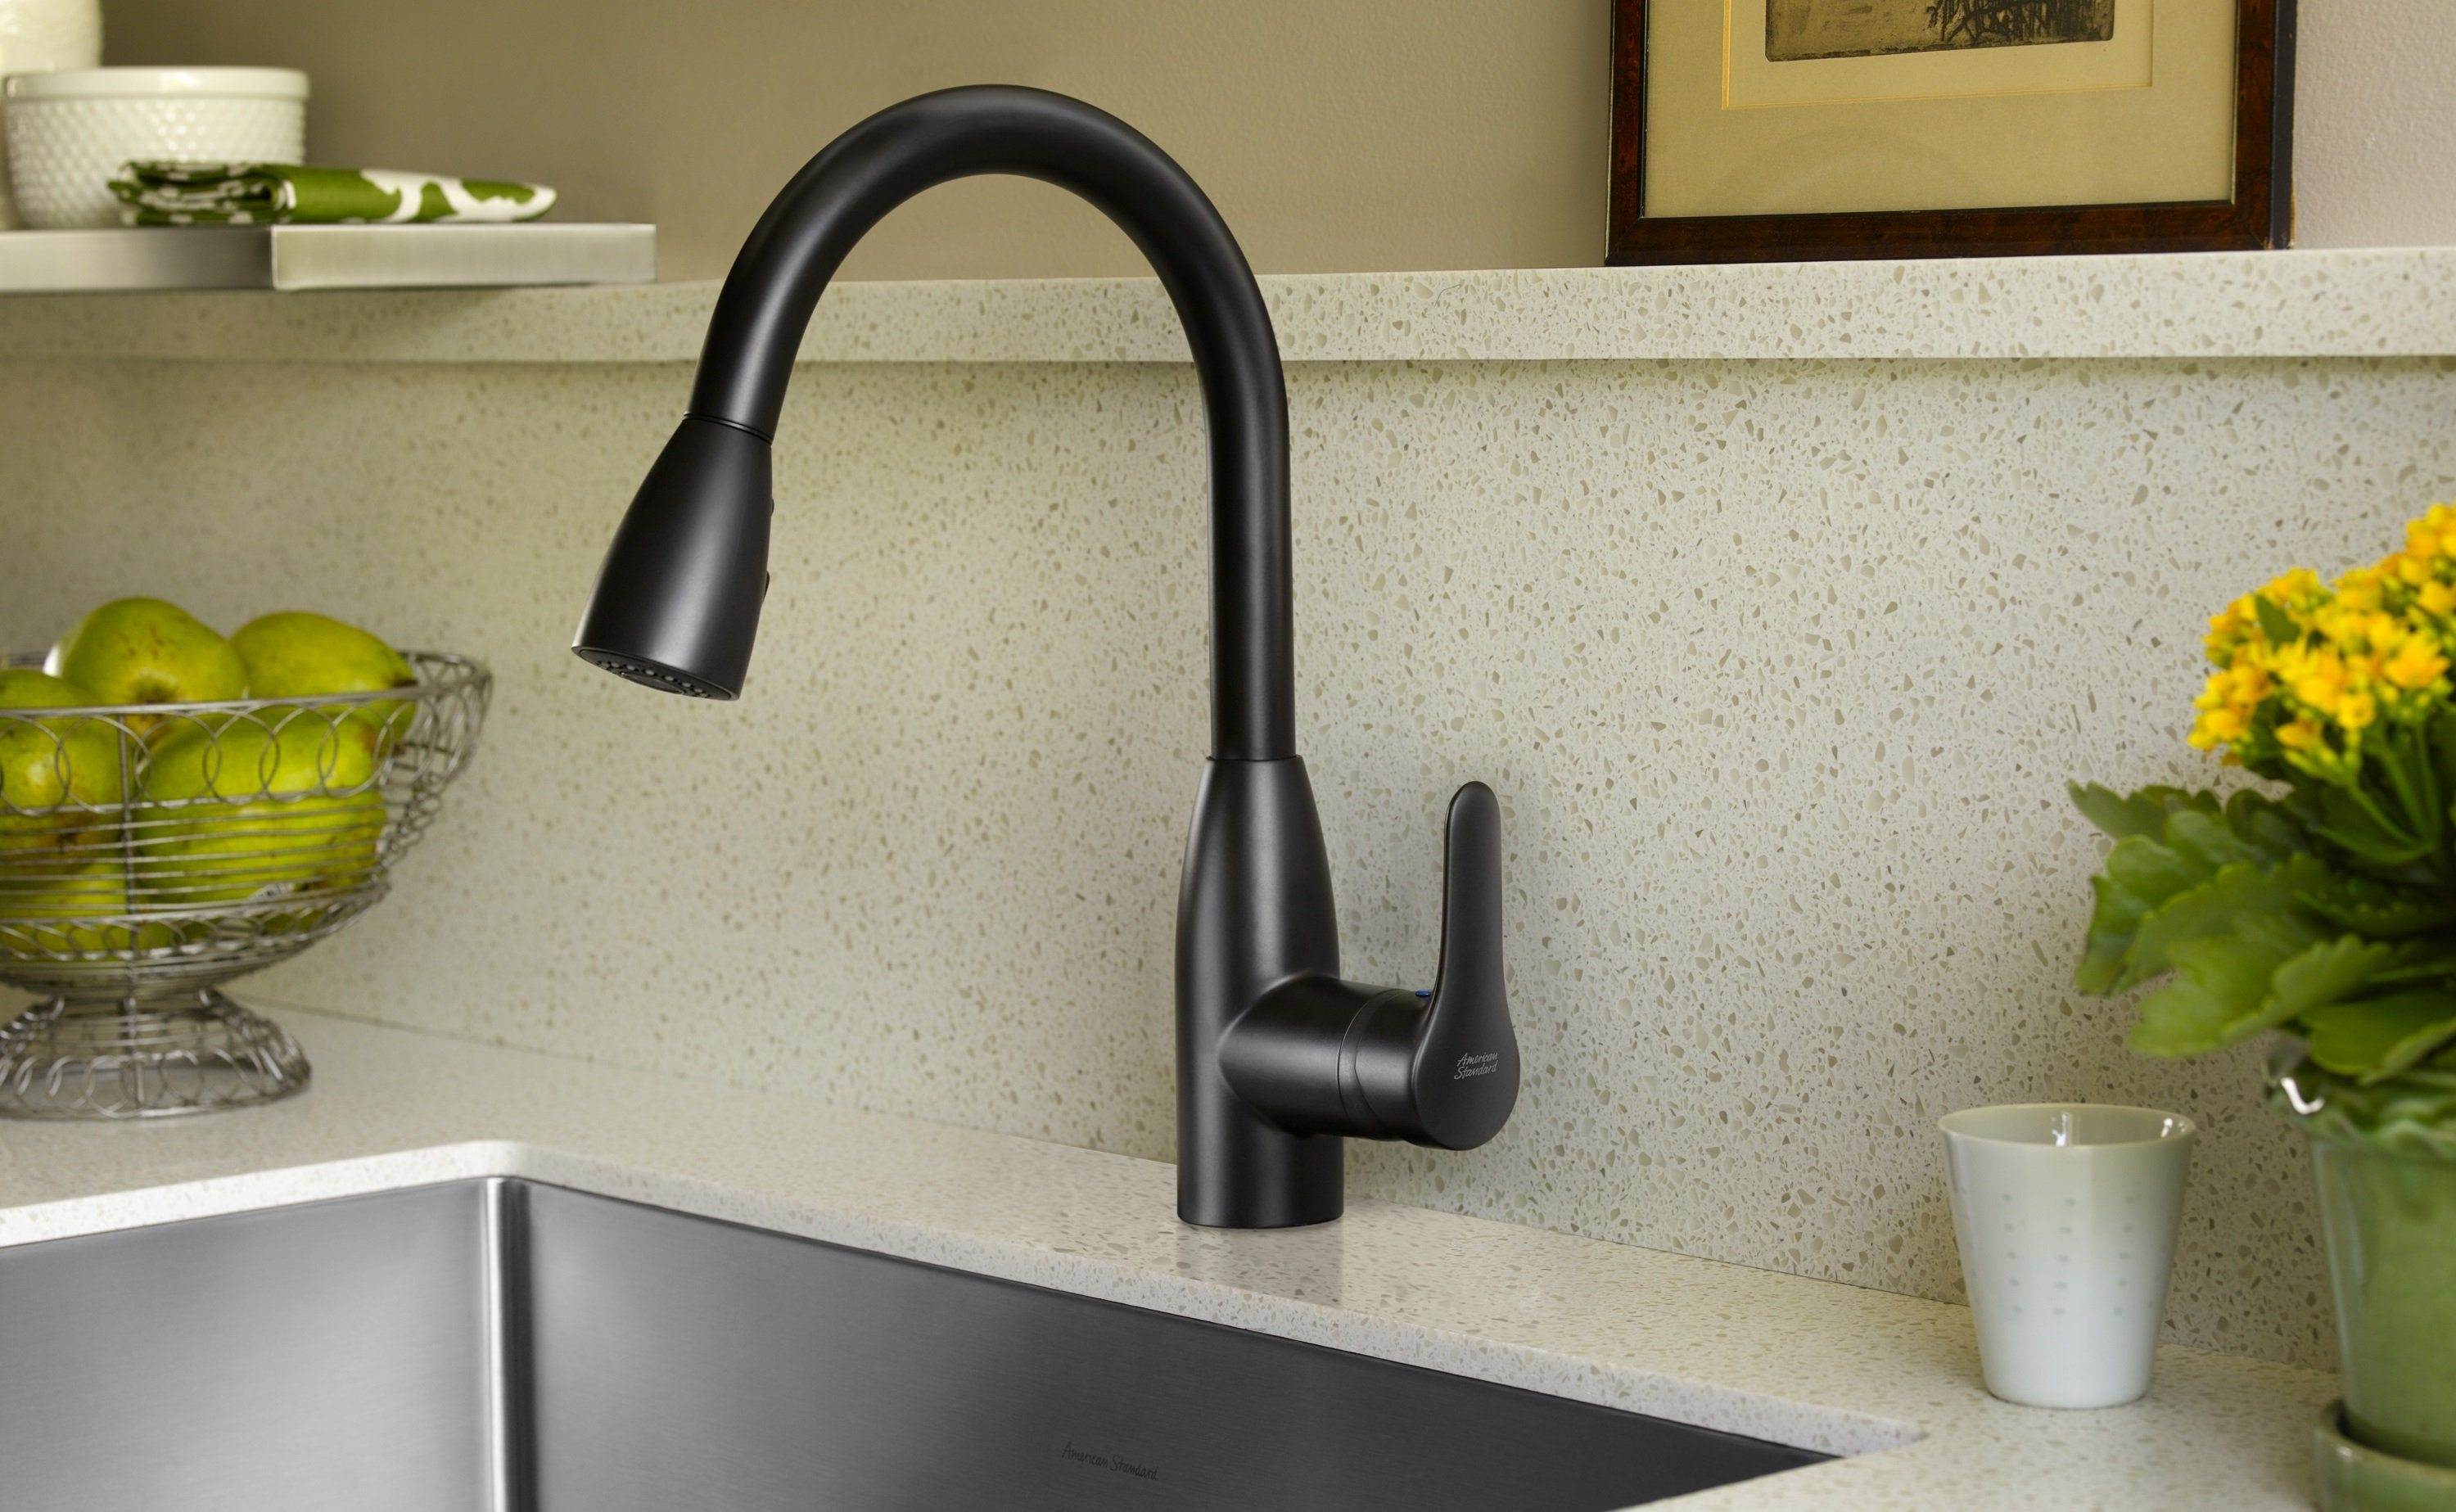 Ideas, kohler touchless faucet troubleshooting kohler touchless faucet troubleshooting kitchen inexpensive costco kitchen faucets for your best kitchen 3000 x 1847  .